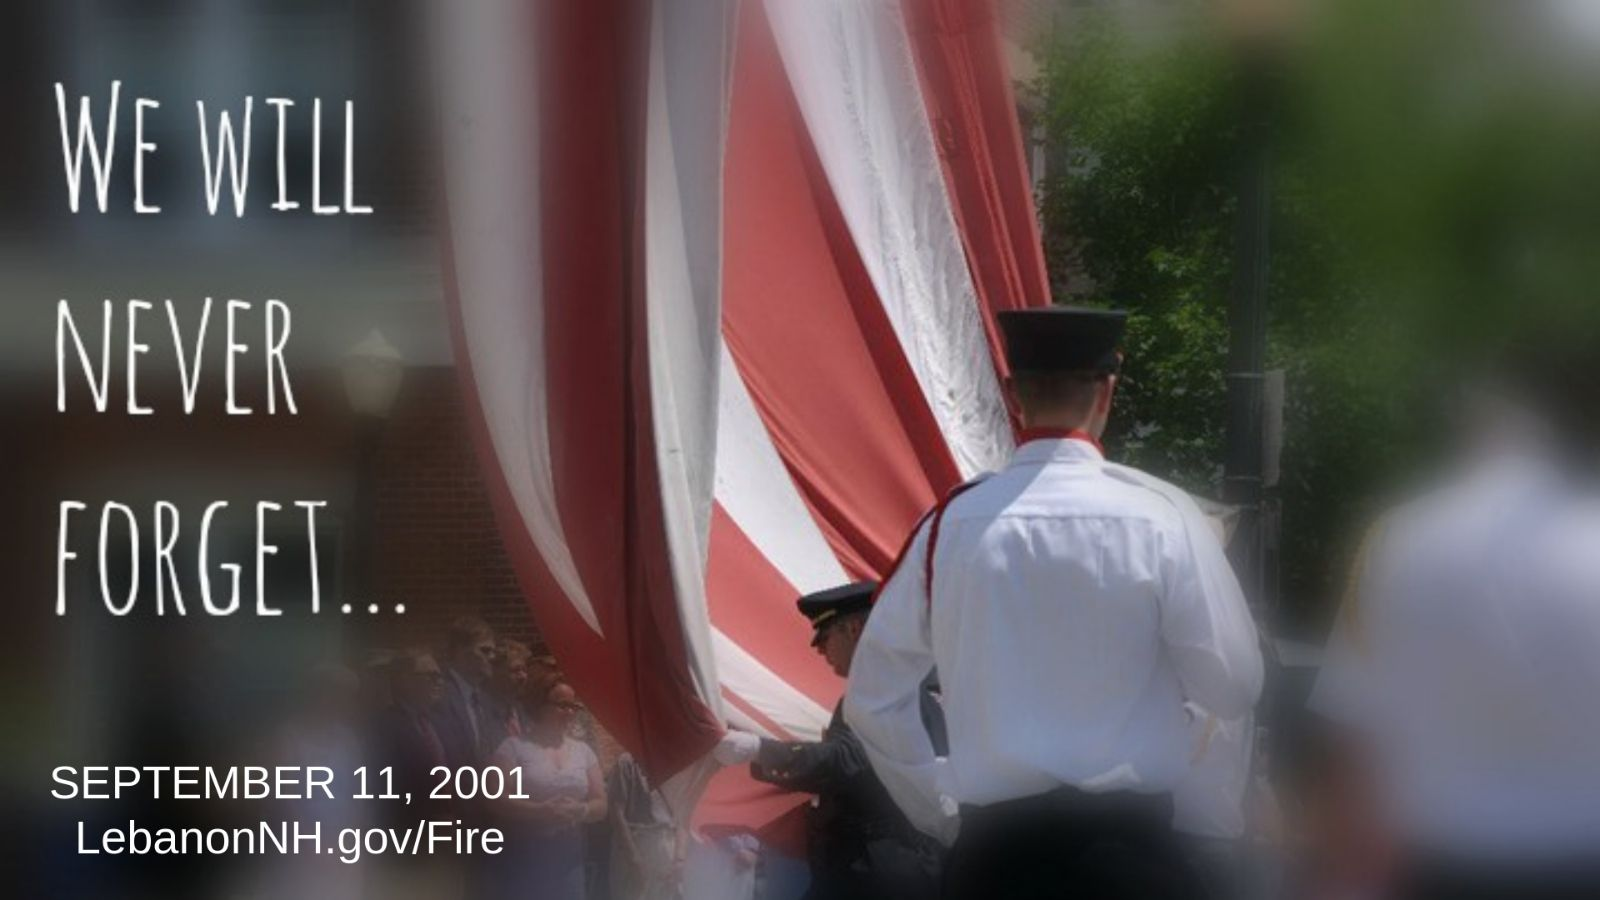 We will never forget photo of American Flag and Lebanon Fire Fighters Opens in new window